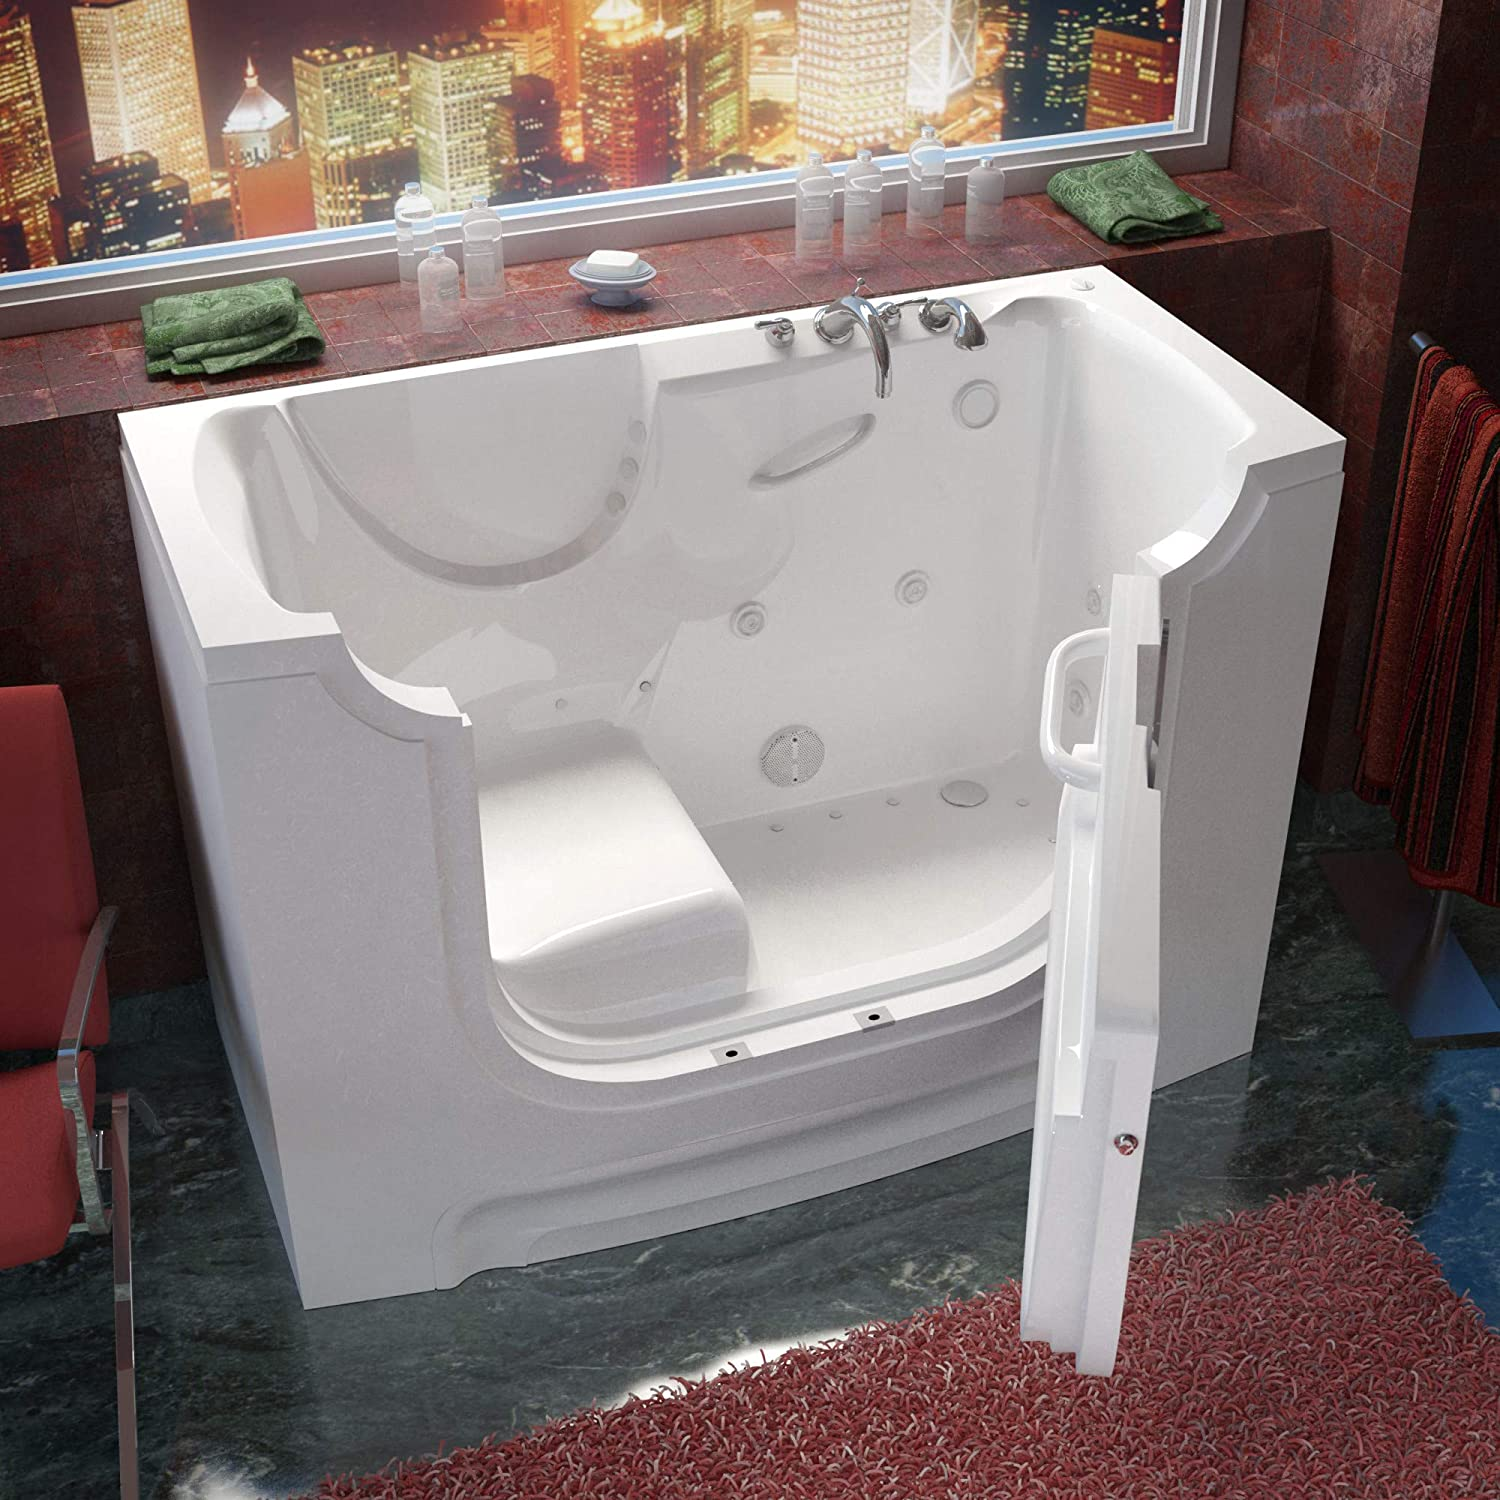 Meditub MT3060WCALWH Wheelchair Accessible 30 by 60 by 42-Inch Hydrotherapy Walk In Bathtub Spa Left Side Door White